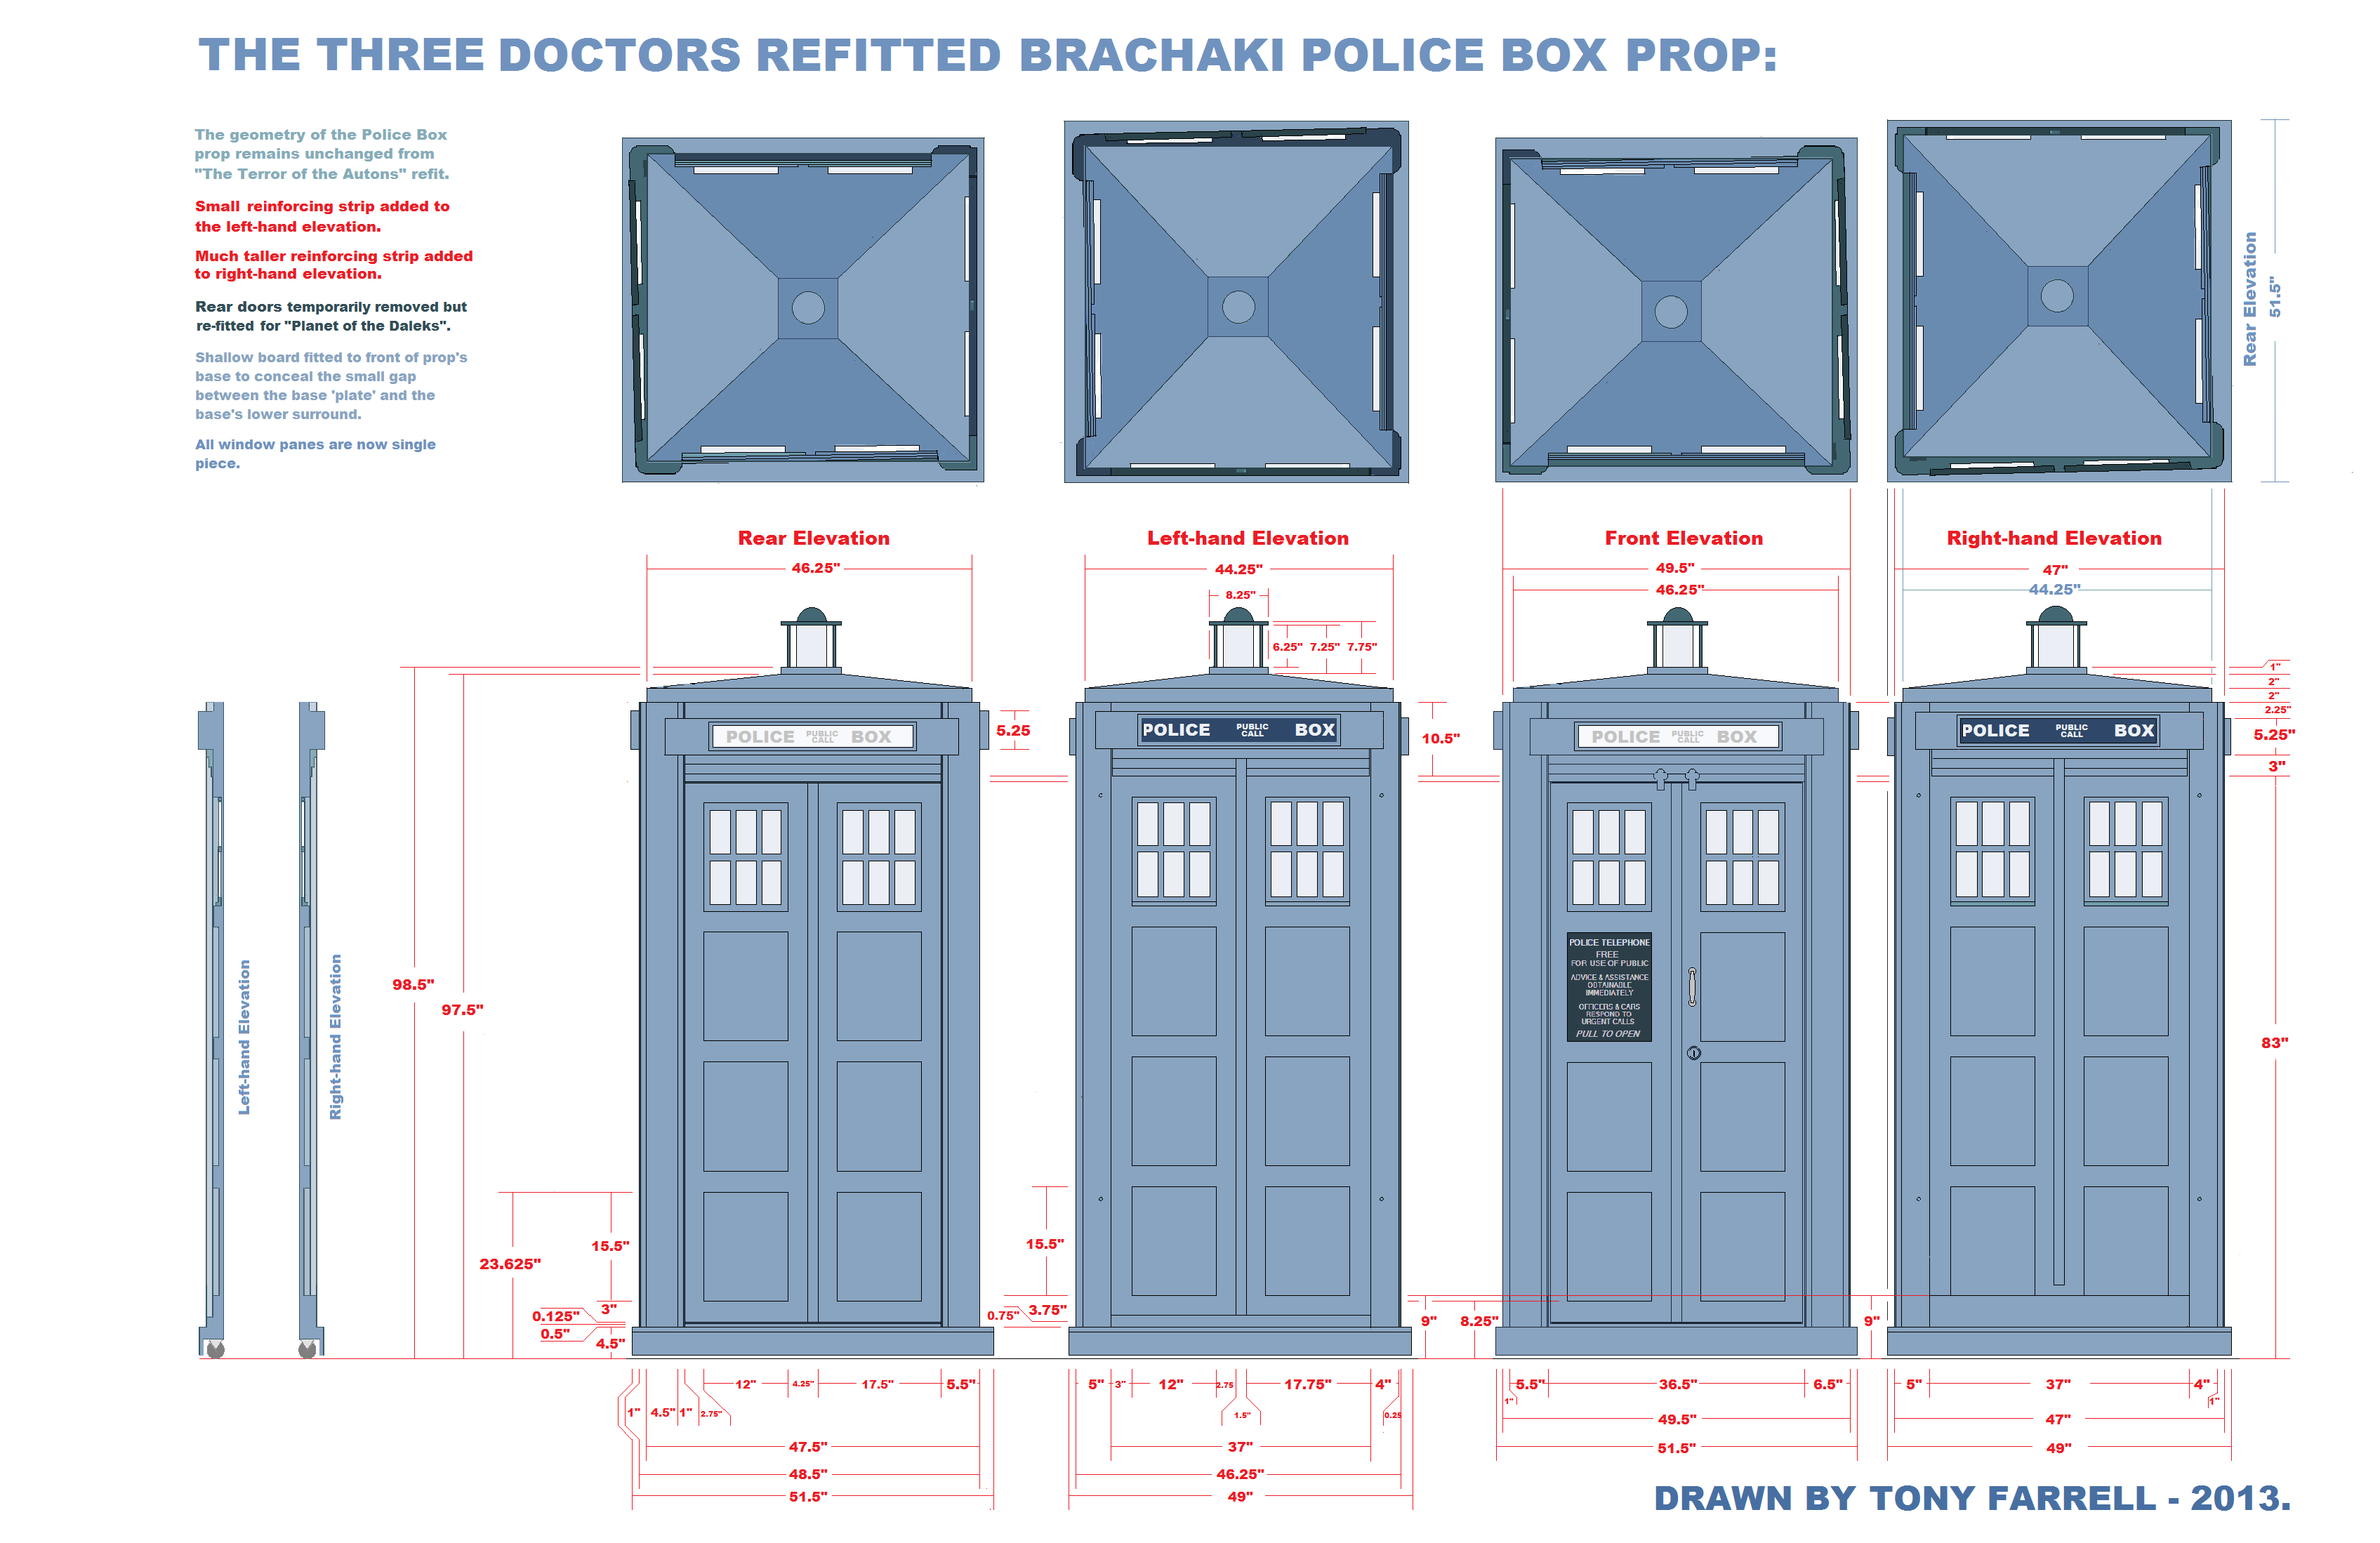 Brachaki_refitted_box_all_sides_3 doctors.png